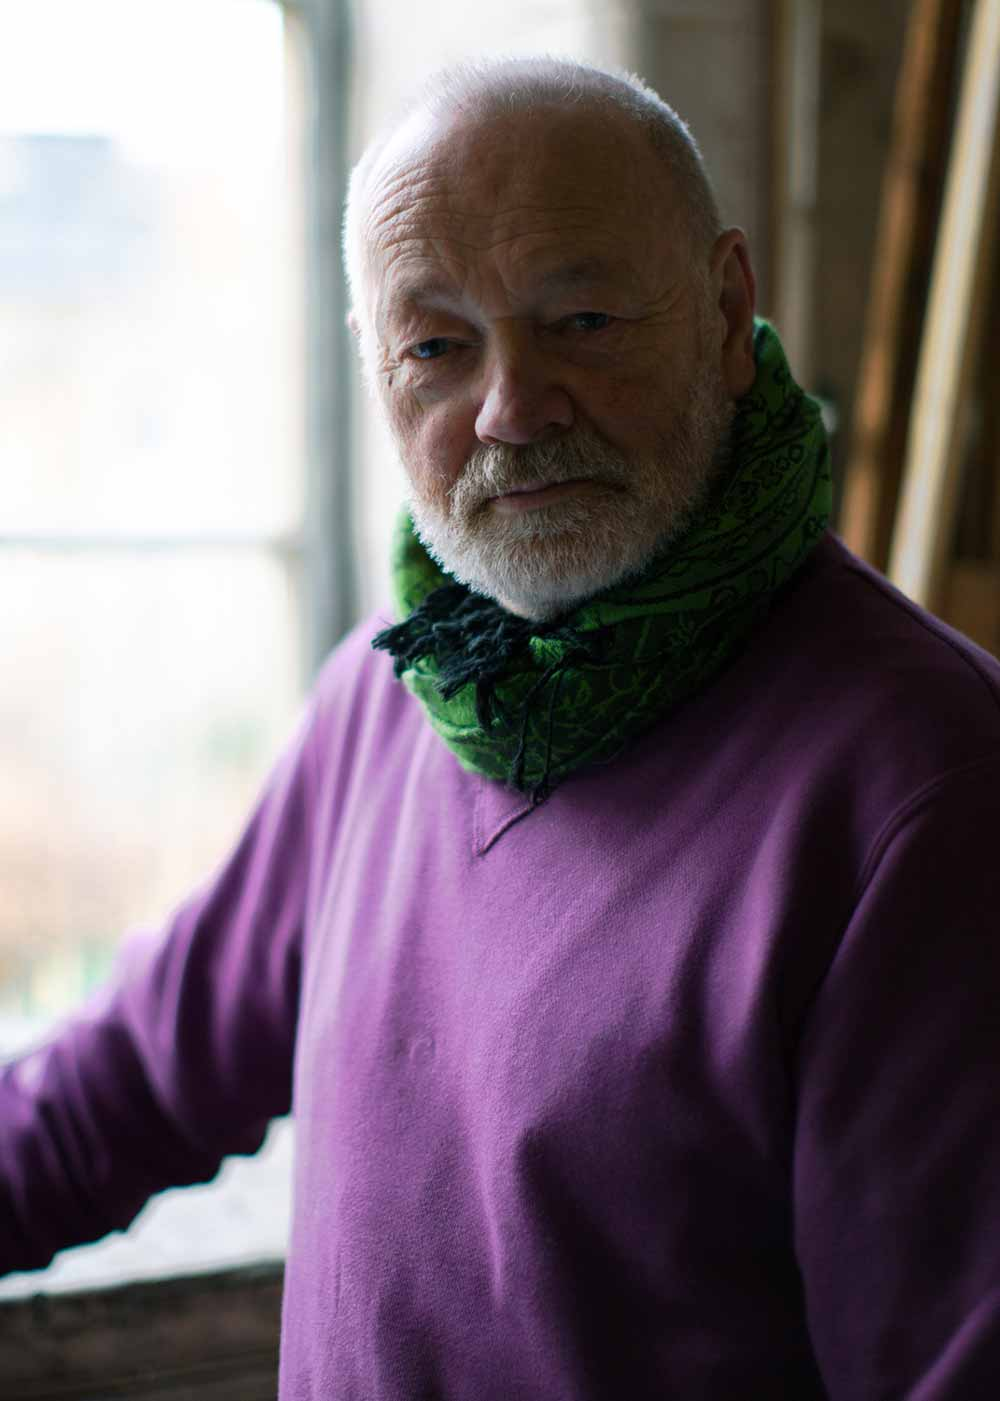 Portait of artist Jon George, wearing purple jumper